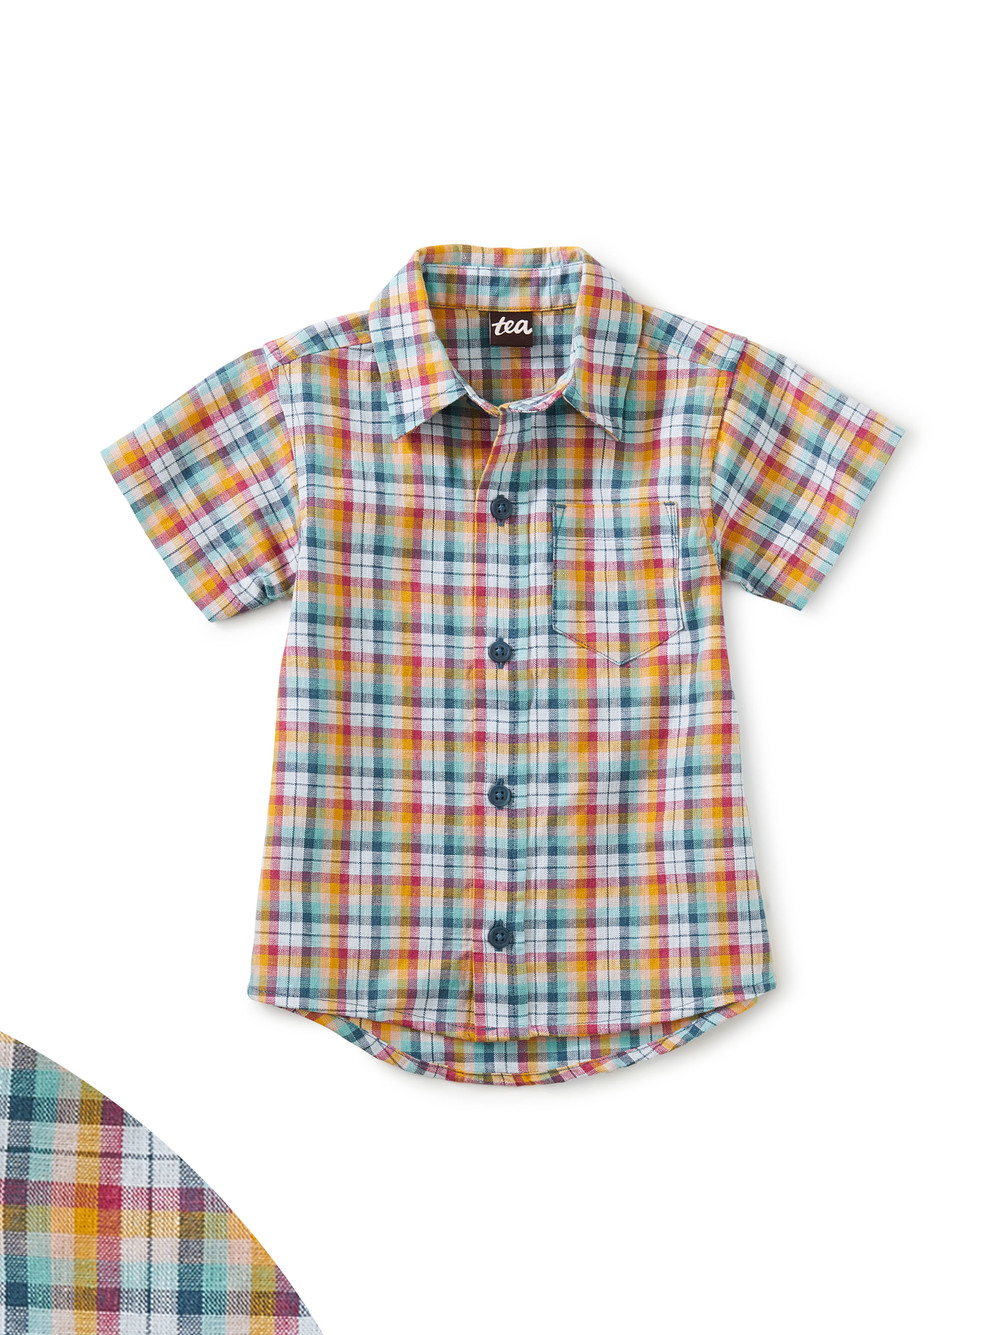 Button Up Baby Shirt